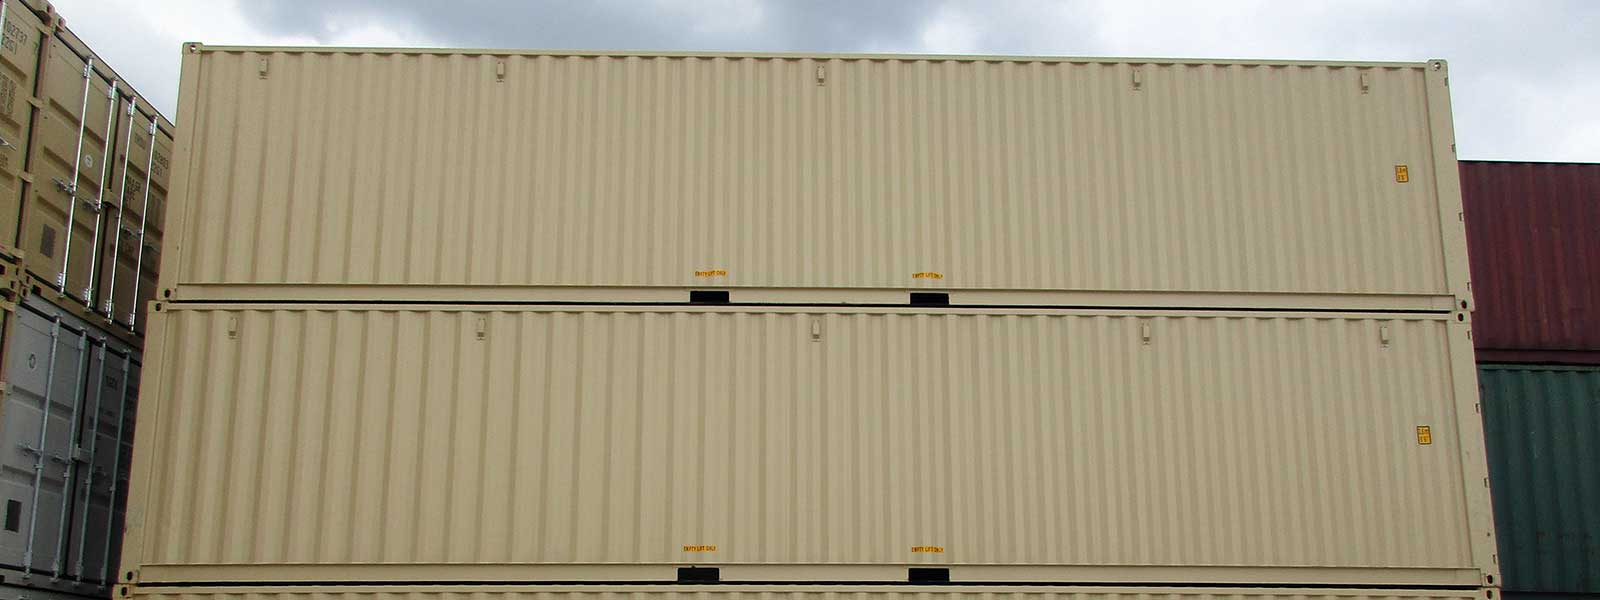 new-40ft-containers-stacked